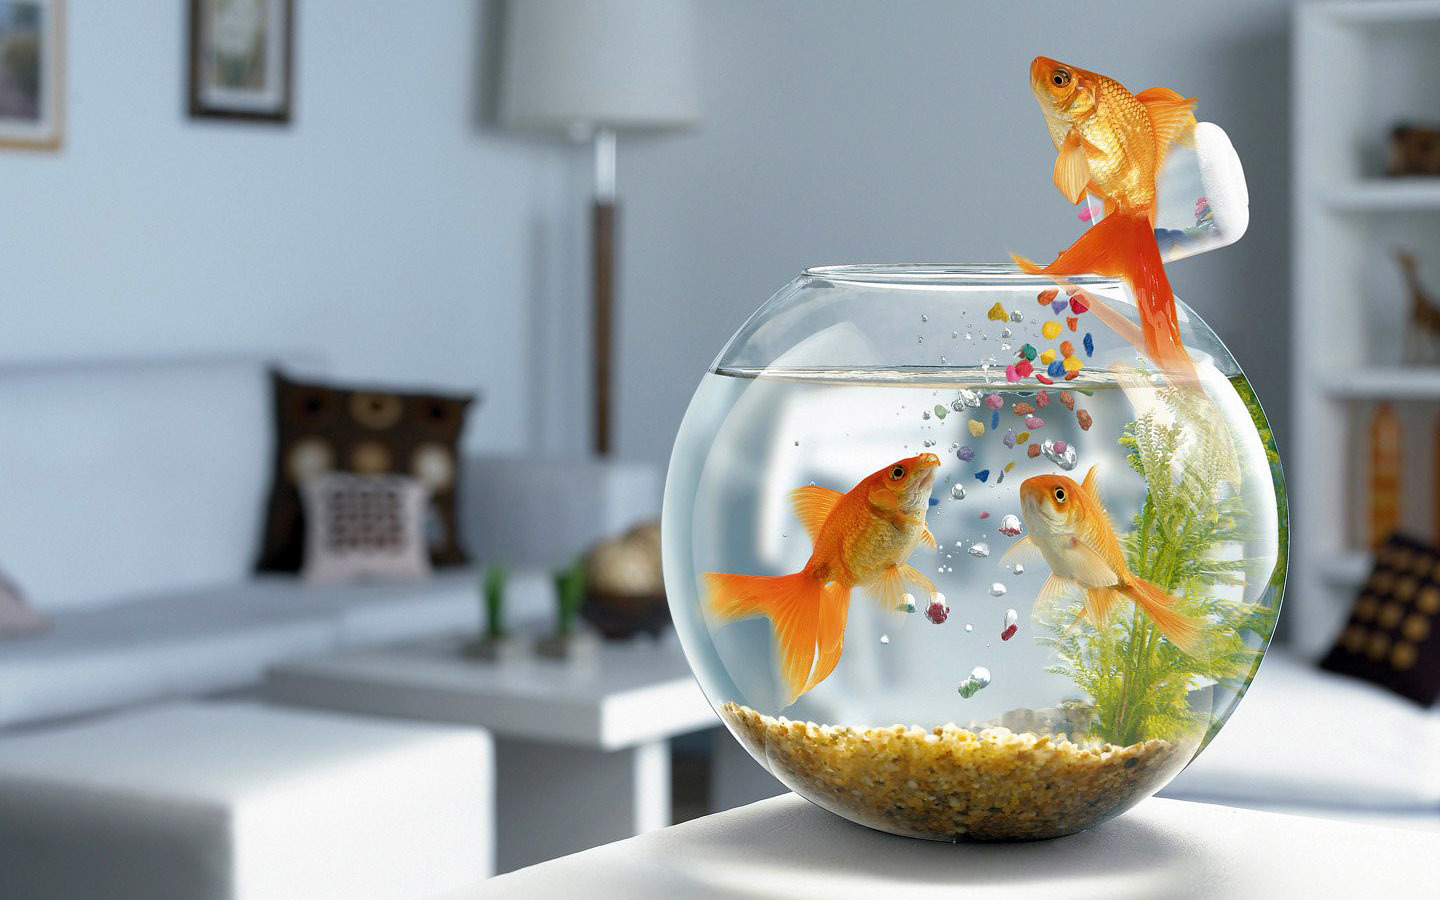 fish pets bowls Aquarium HD Wallpaper